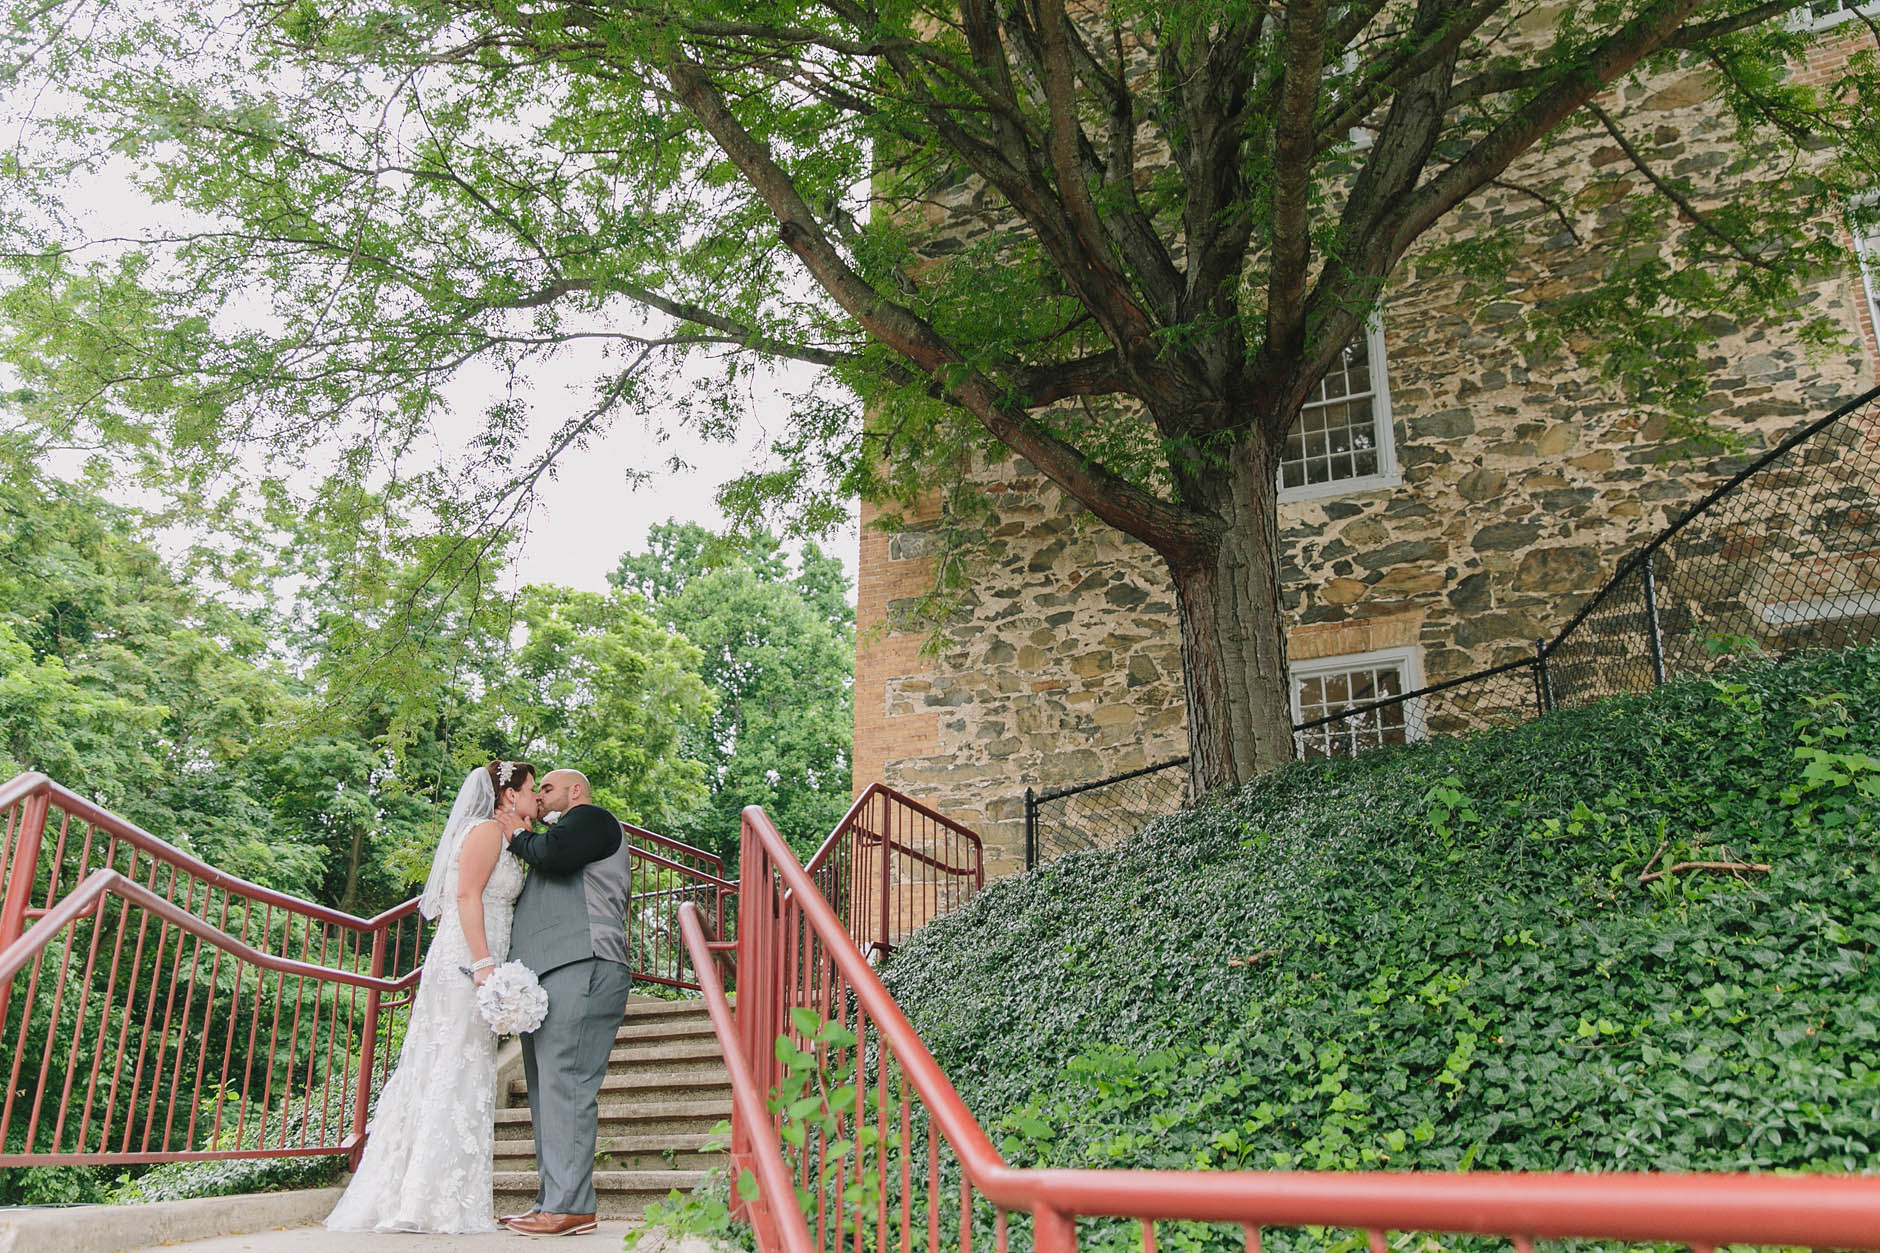 A summer wedding at the Great Room at Historic Savage Mill in Savage, Maryland with Beth & Chris. All photos created by Maria Sharp Photography. To view more please visit, http://www.mariacsharp.com/